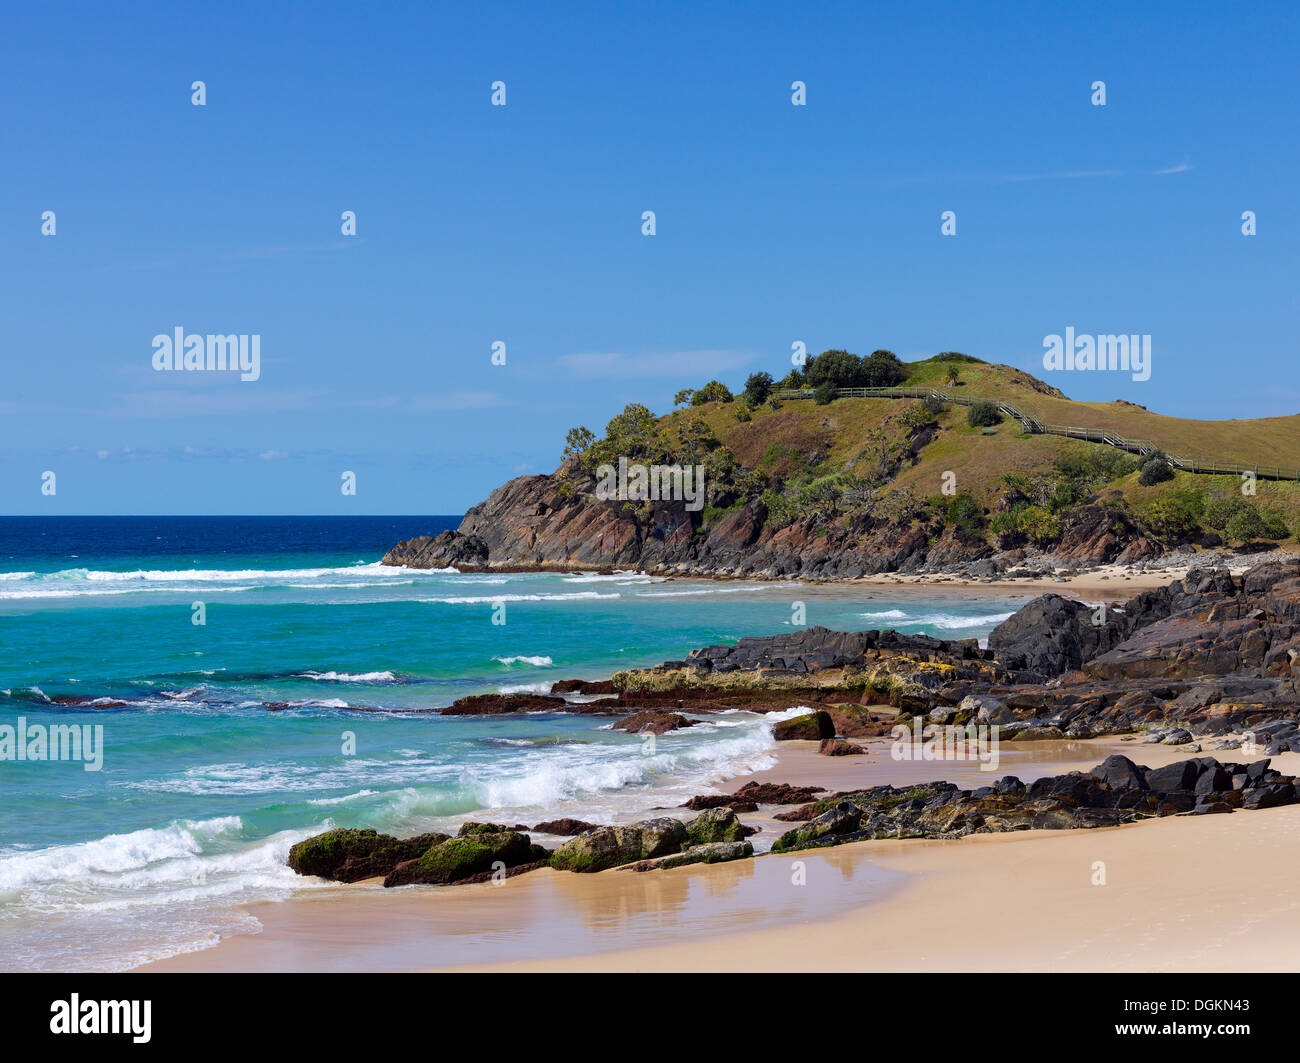 Rocky beach on the Northern NSW coastline. Coral Sea in the background. - Stock Image